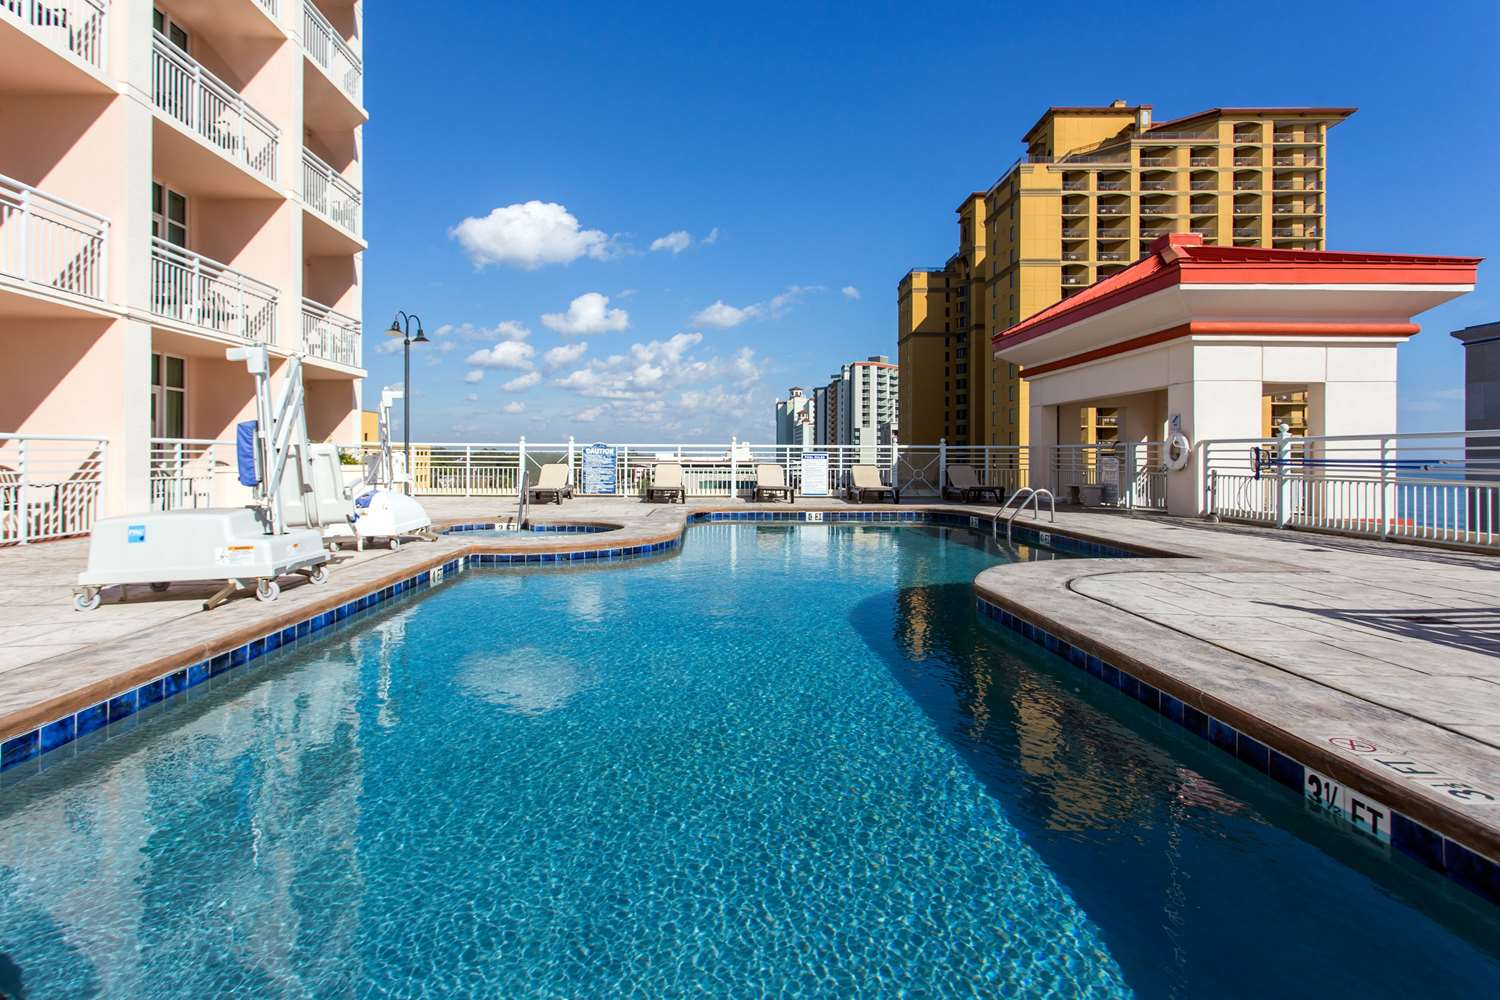 Pool - Bluegreen Vacations Carolina Grande Hotel Myrtle Beach